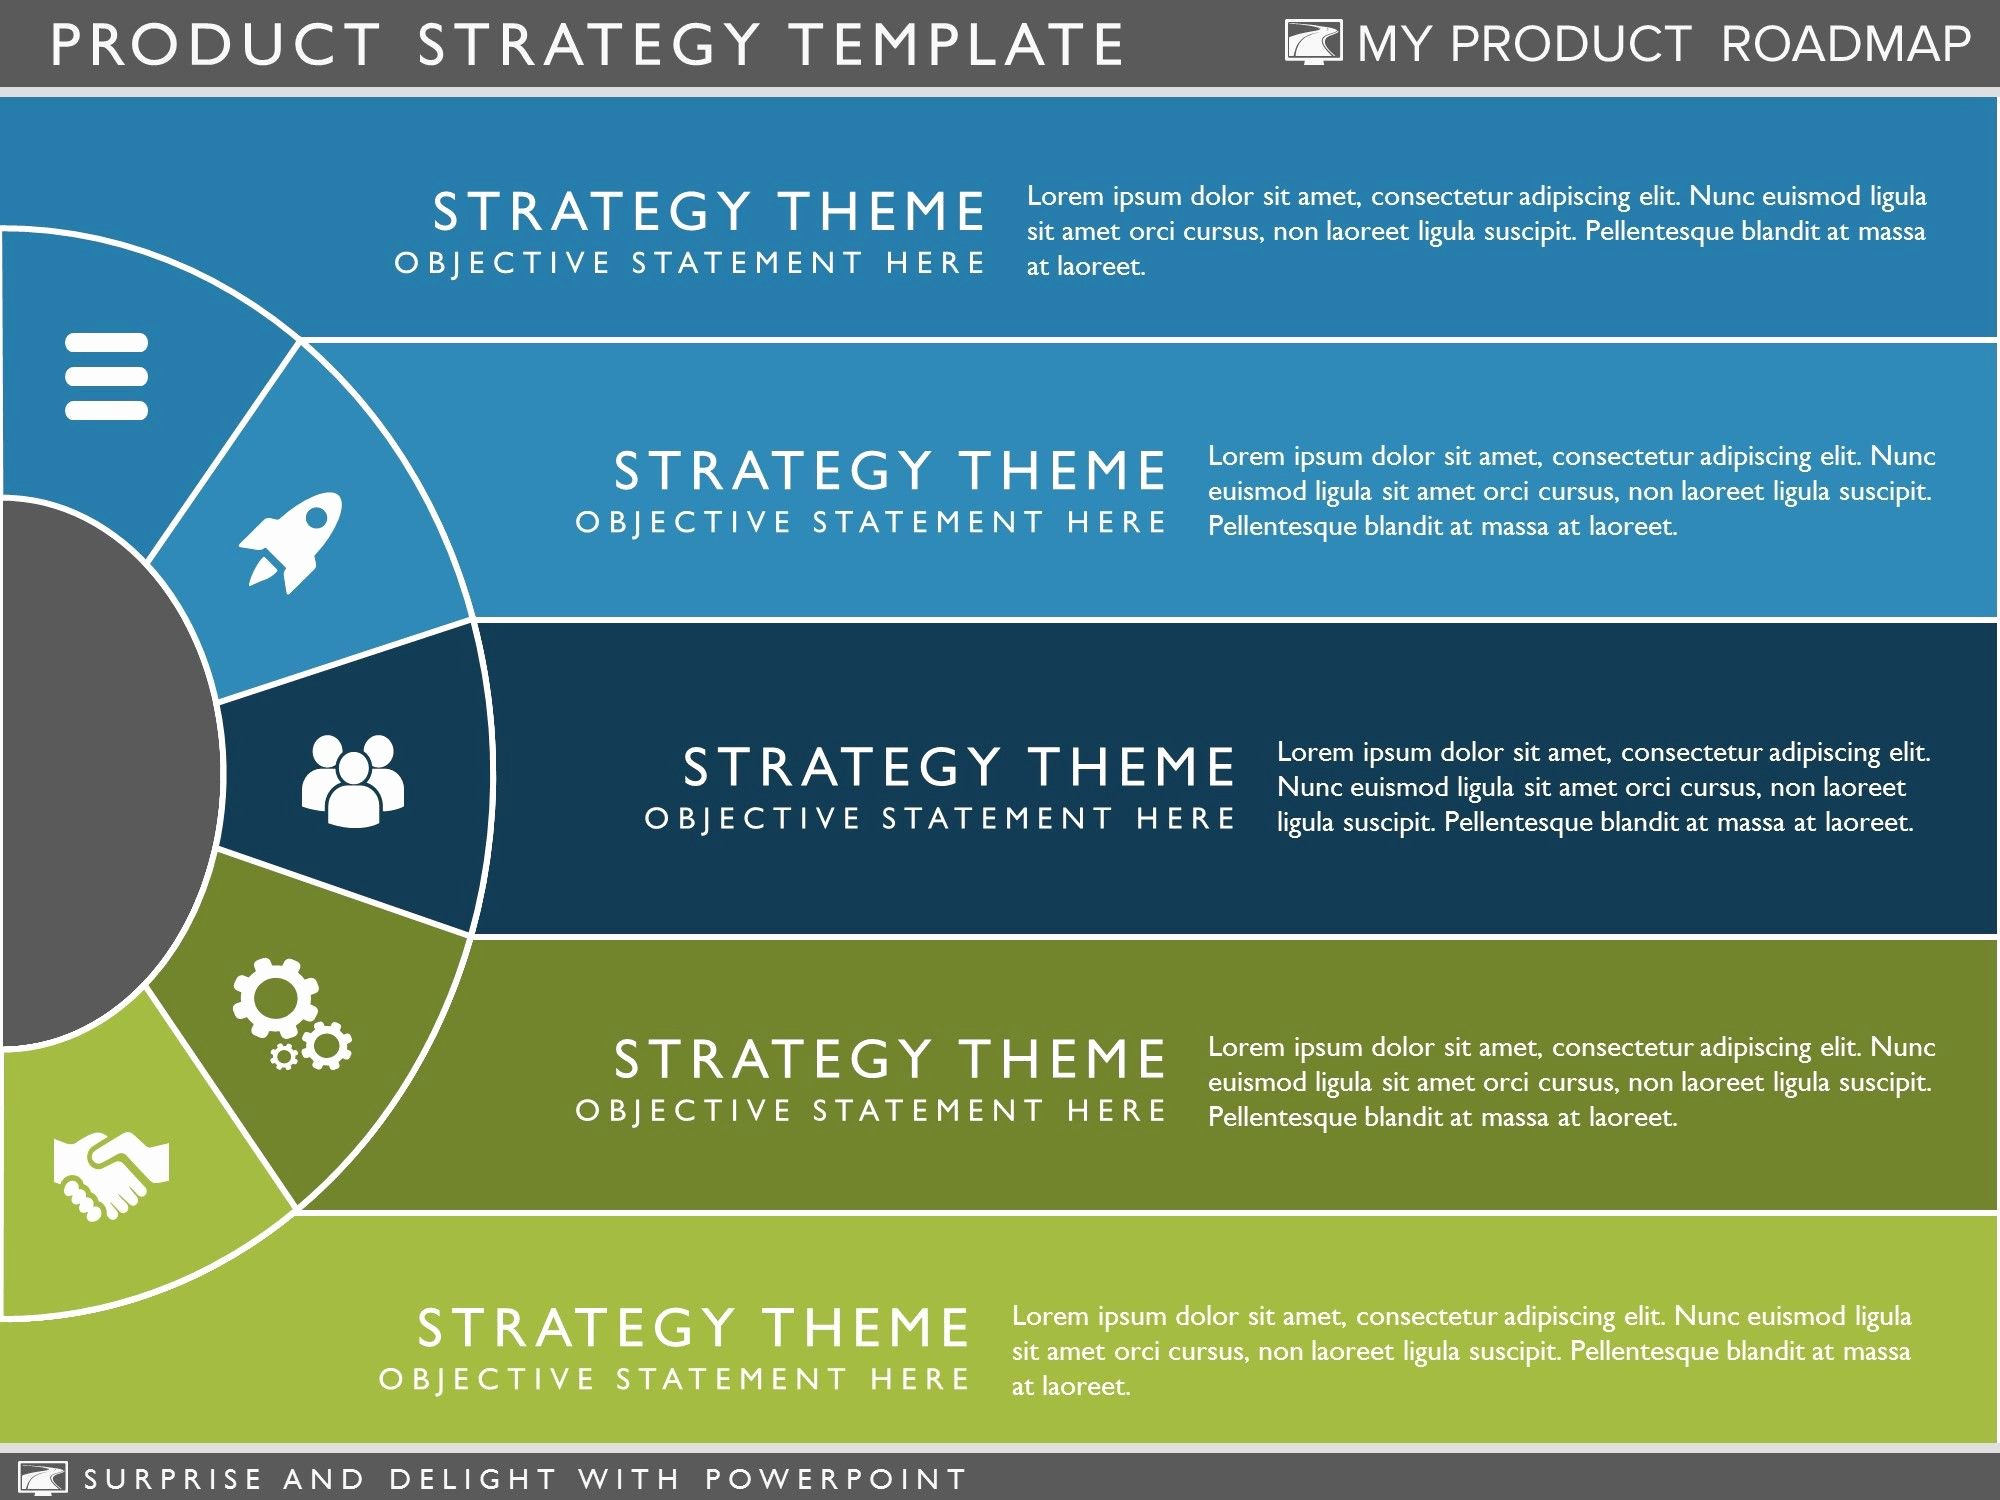 Strategic Plan Powerpoint Template Beautiful Product Strategy Template Clickfunnel Hacks